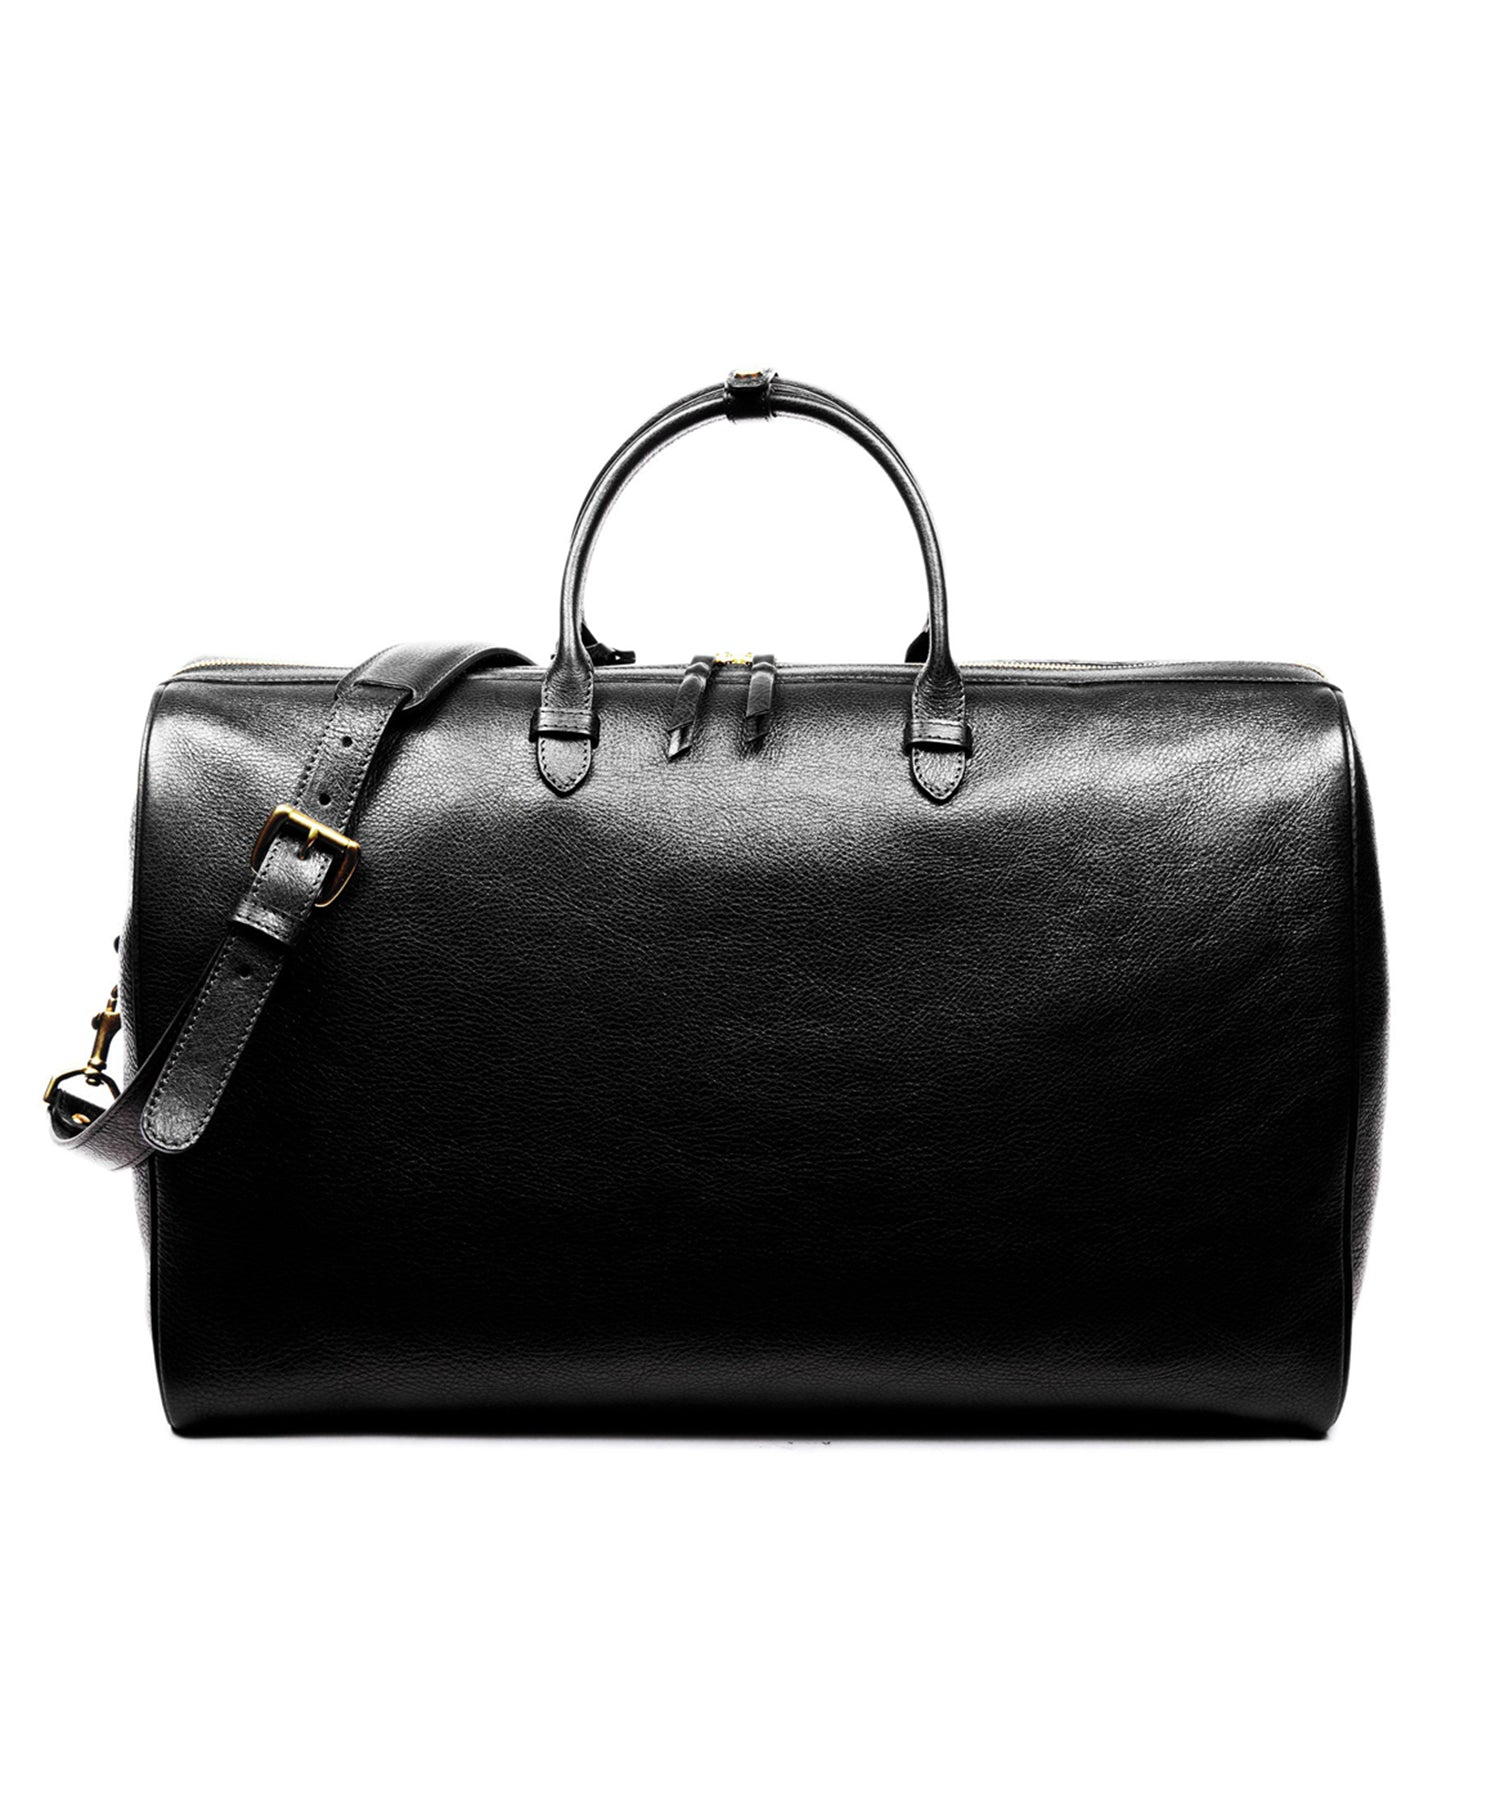 Lotuff No. 12 Weekender Bag in Black